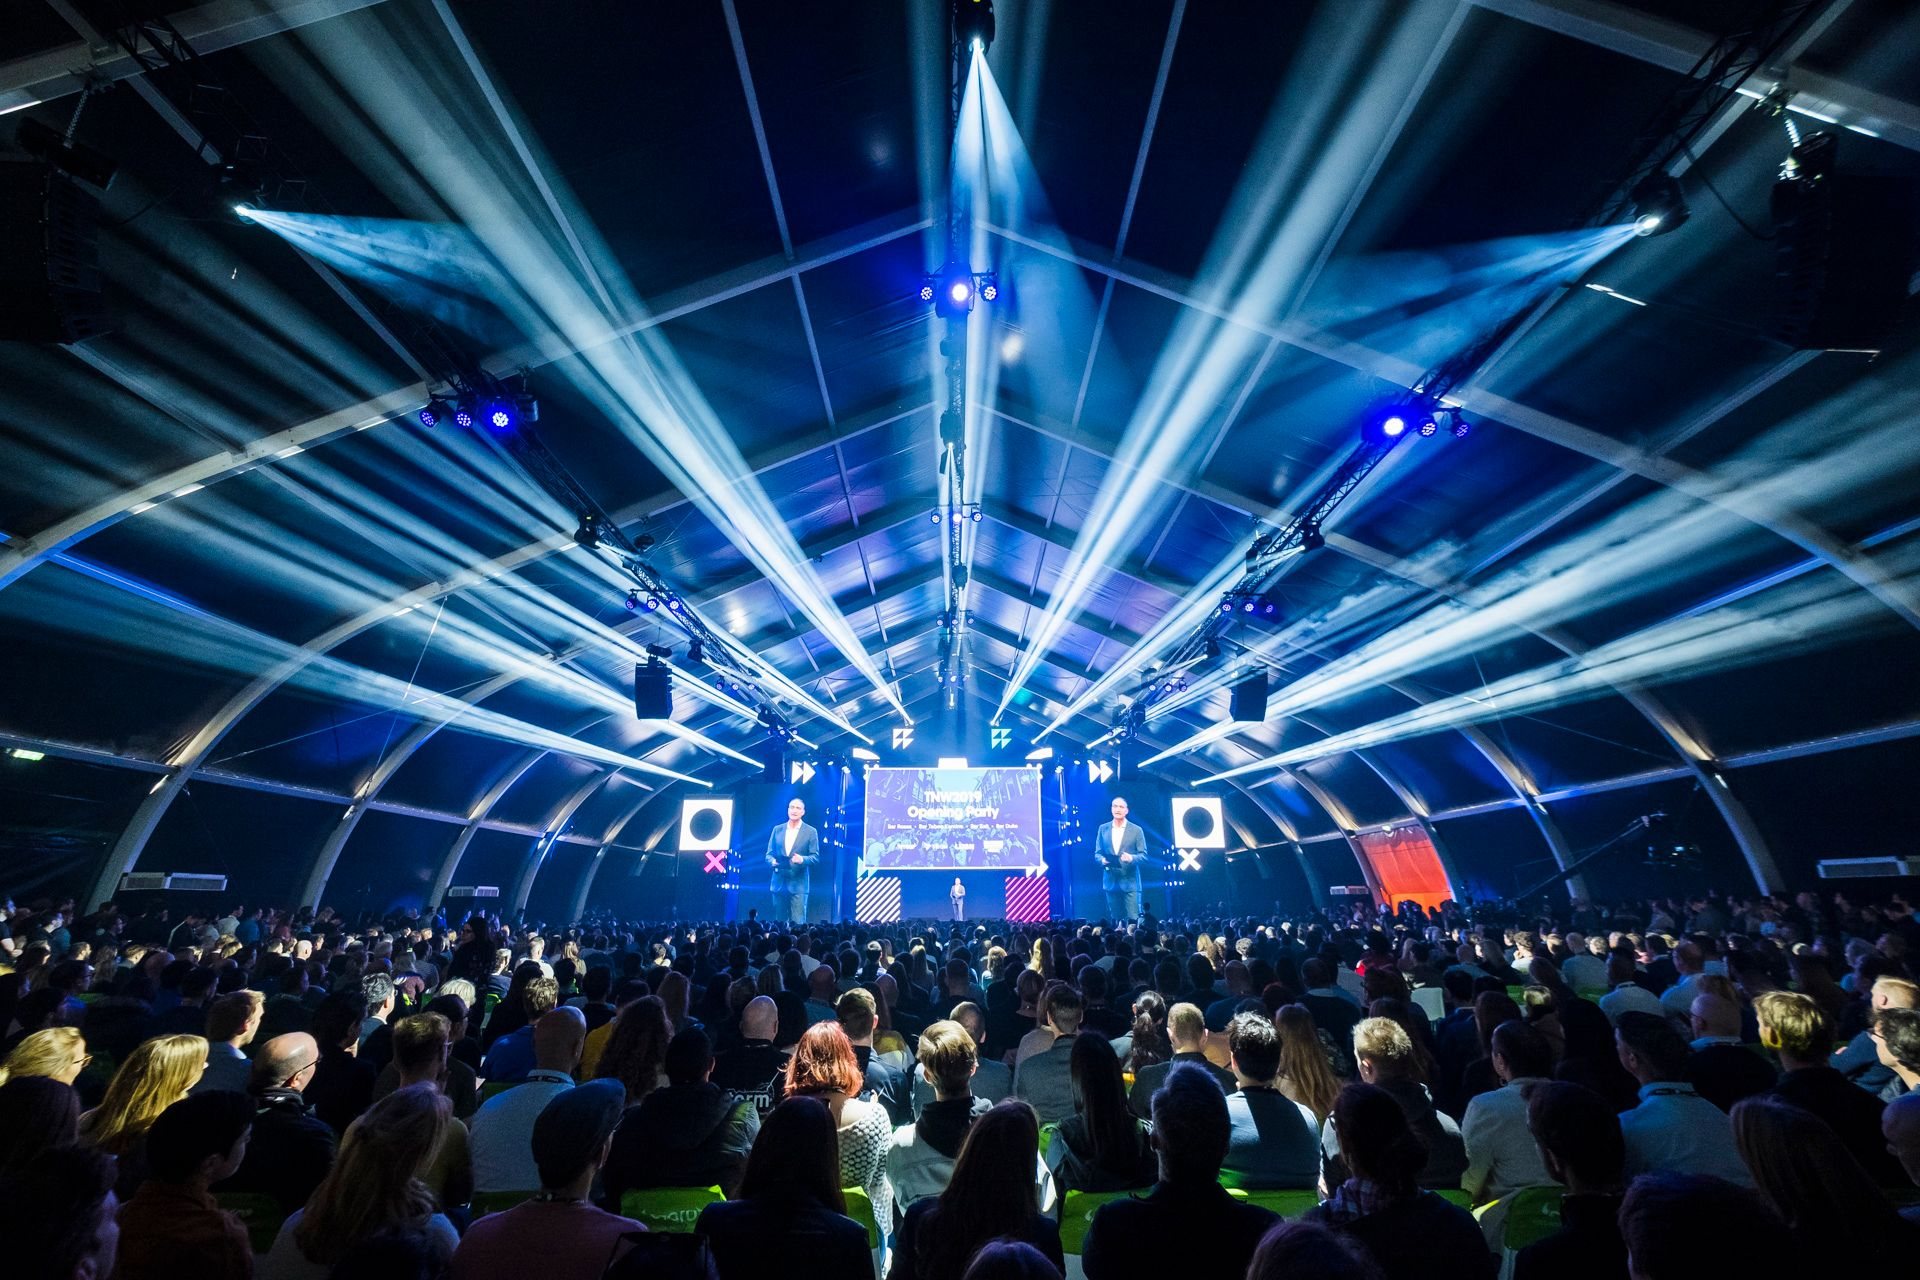 Top 75 Startup Events & Conferences in 2021